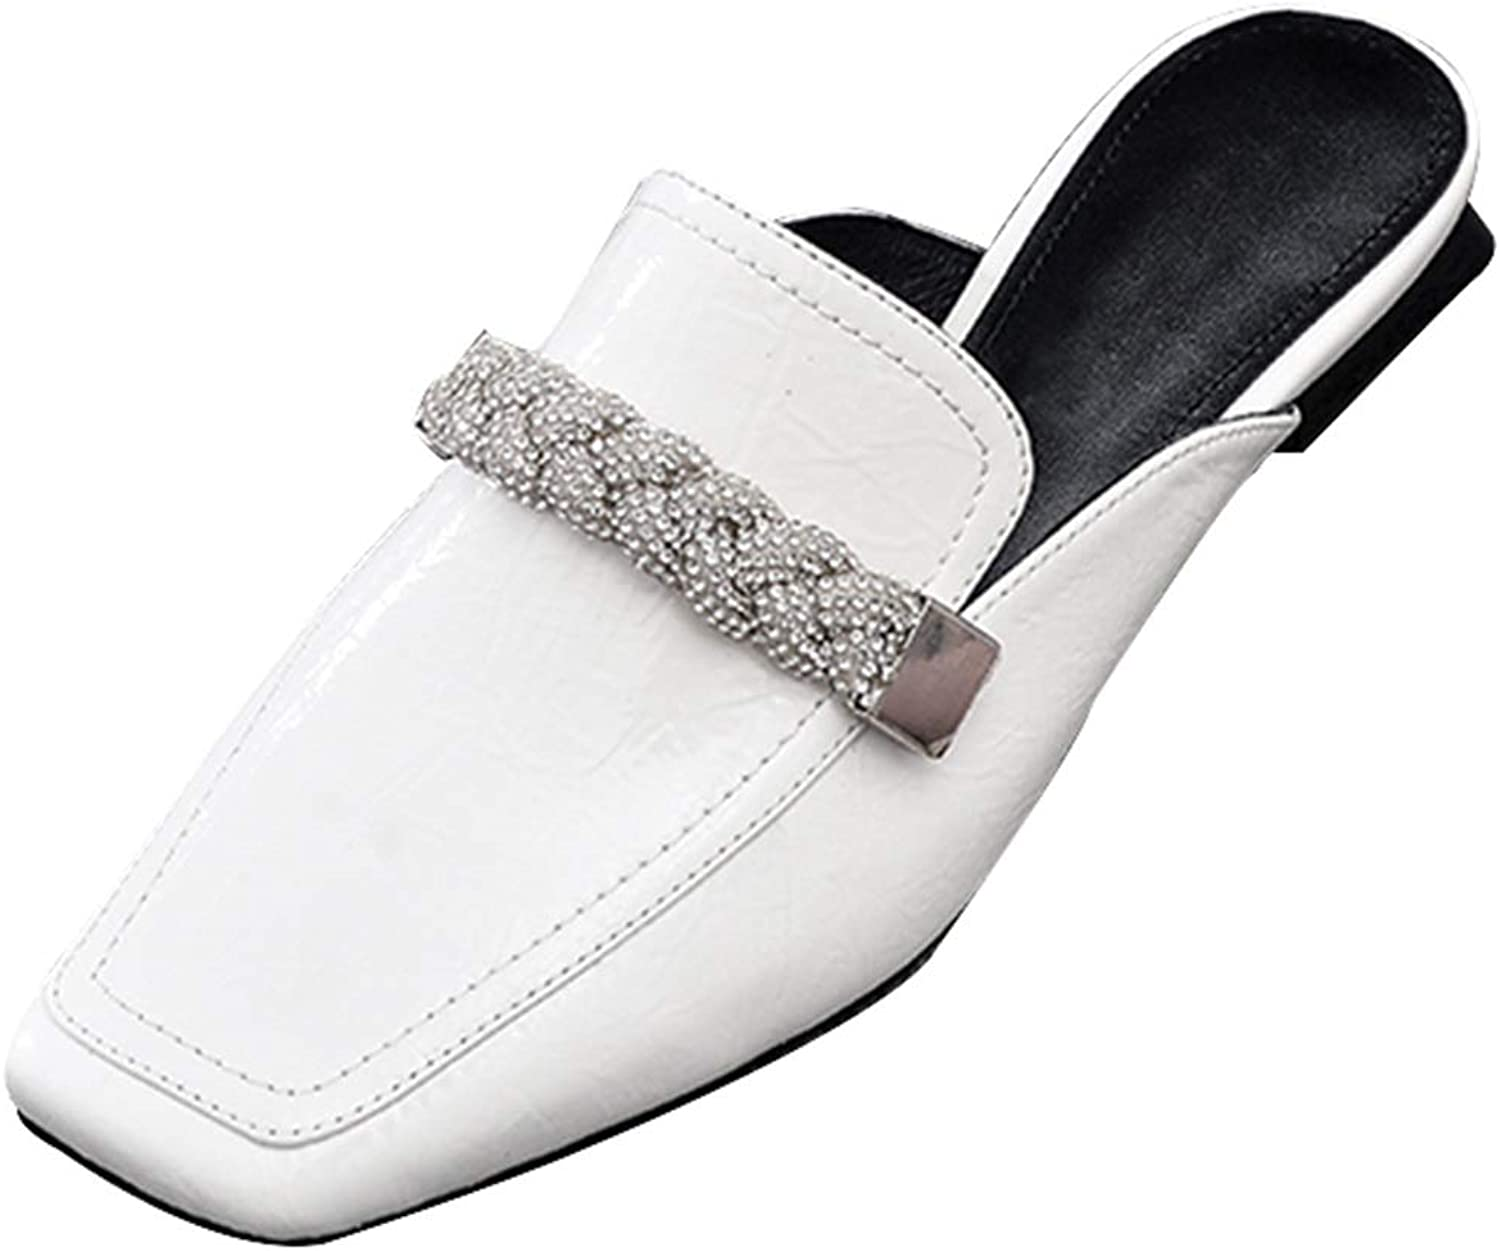 Patent Leather shoes Leather Loafers Rhinestones with Lazy Half Drag Muller shoes Summer Women's shoes Mid Heel Sandals for Wome, Smooth and Comfortable (color   White, Size   39 US8)